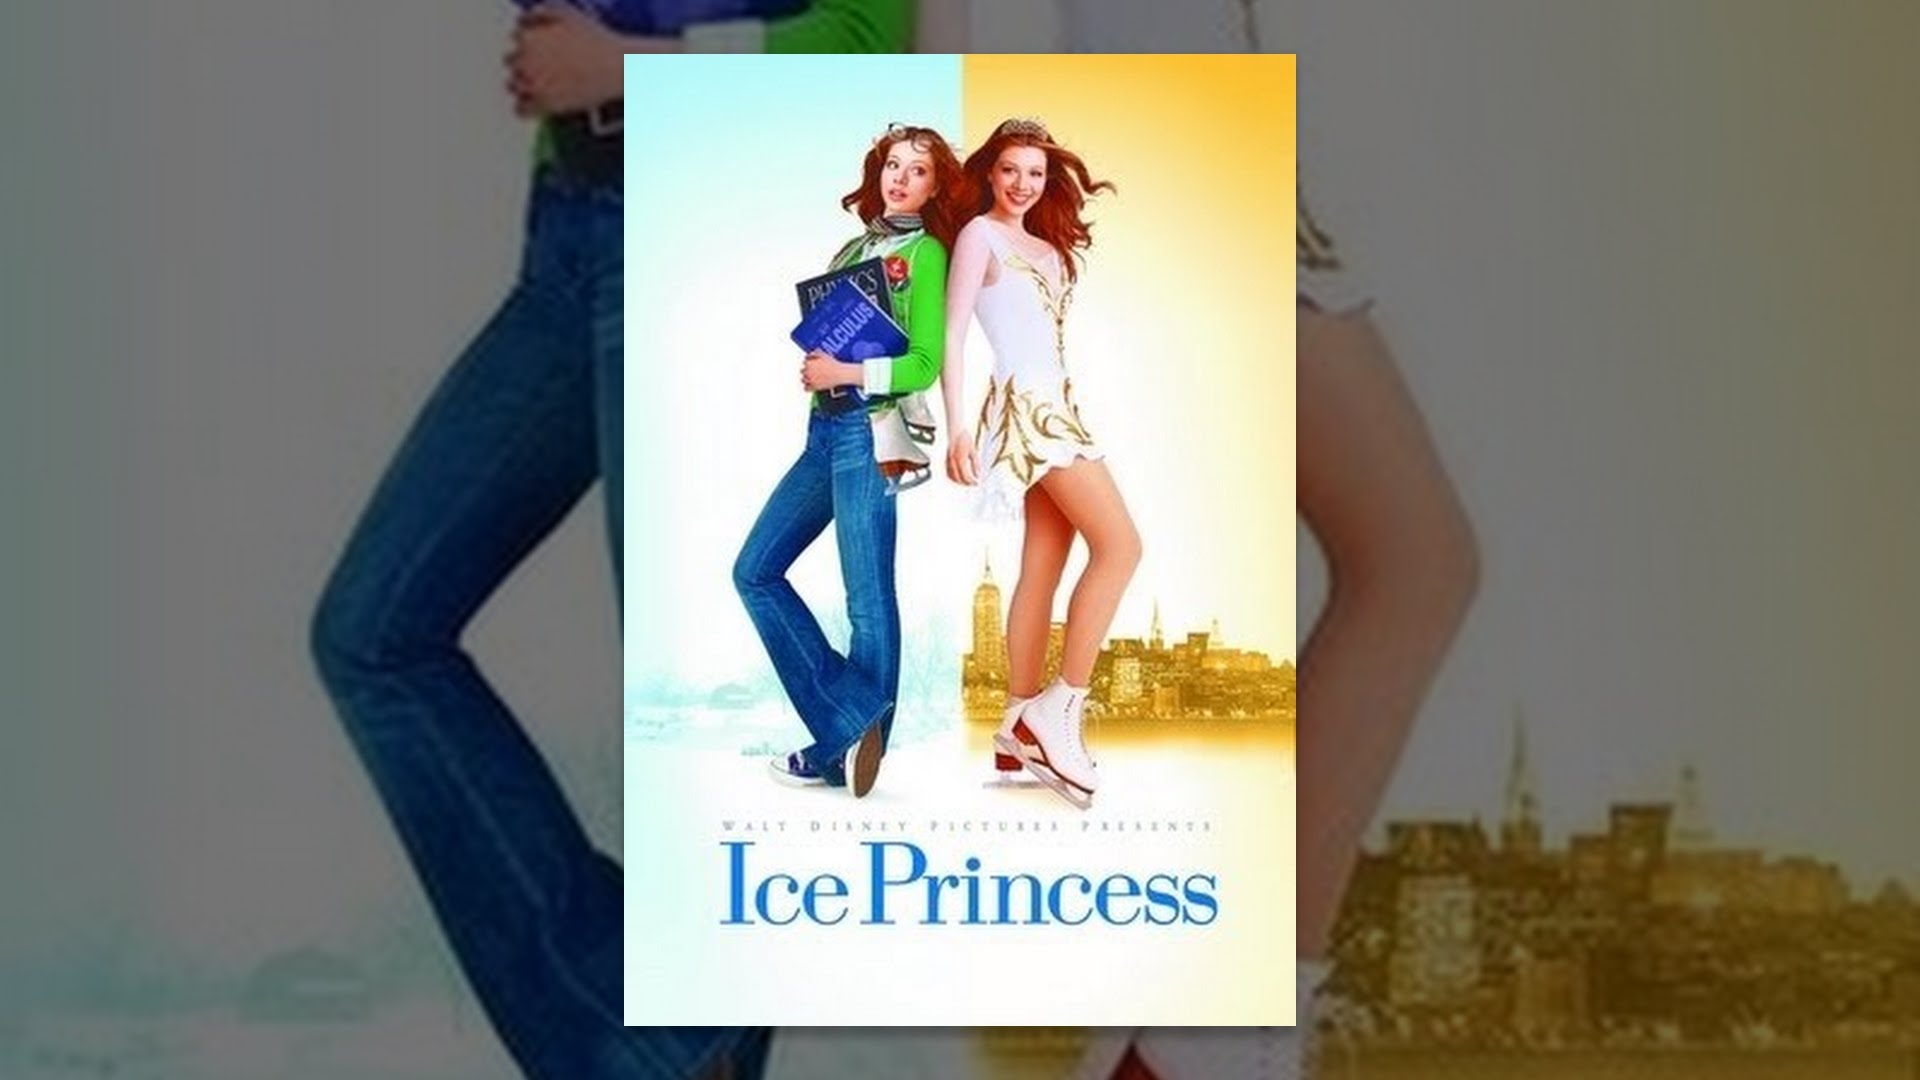 im dating the ice princess charice youtube